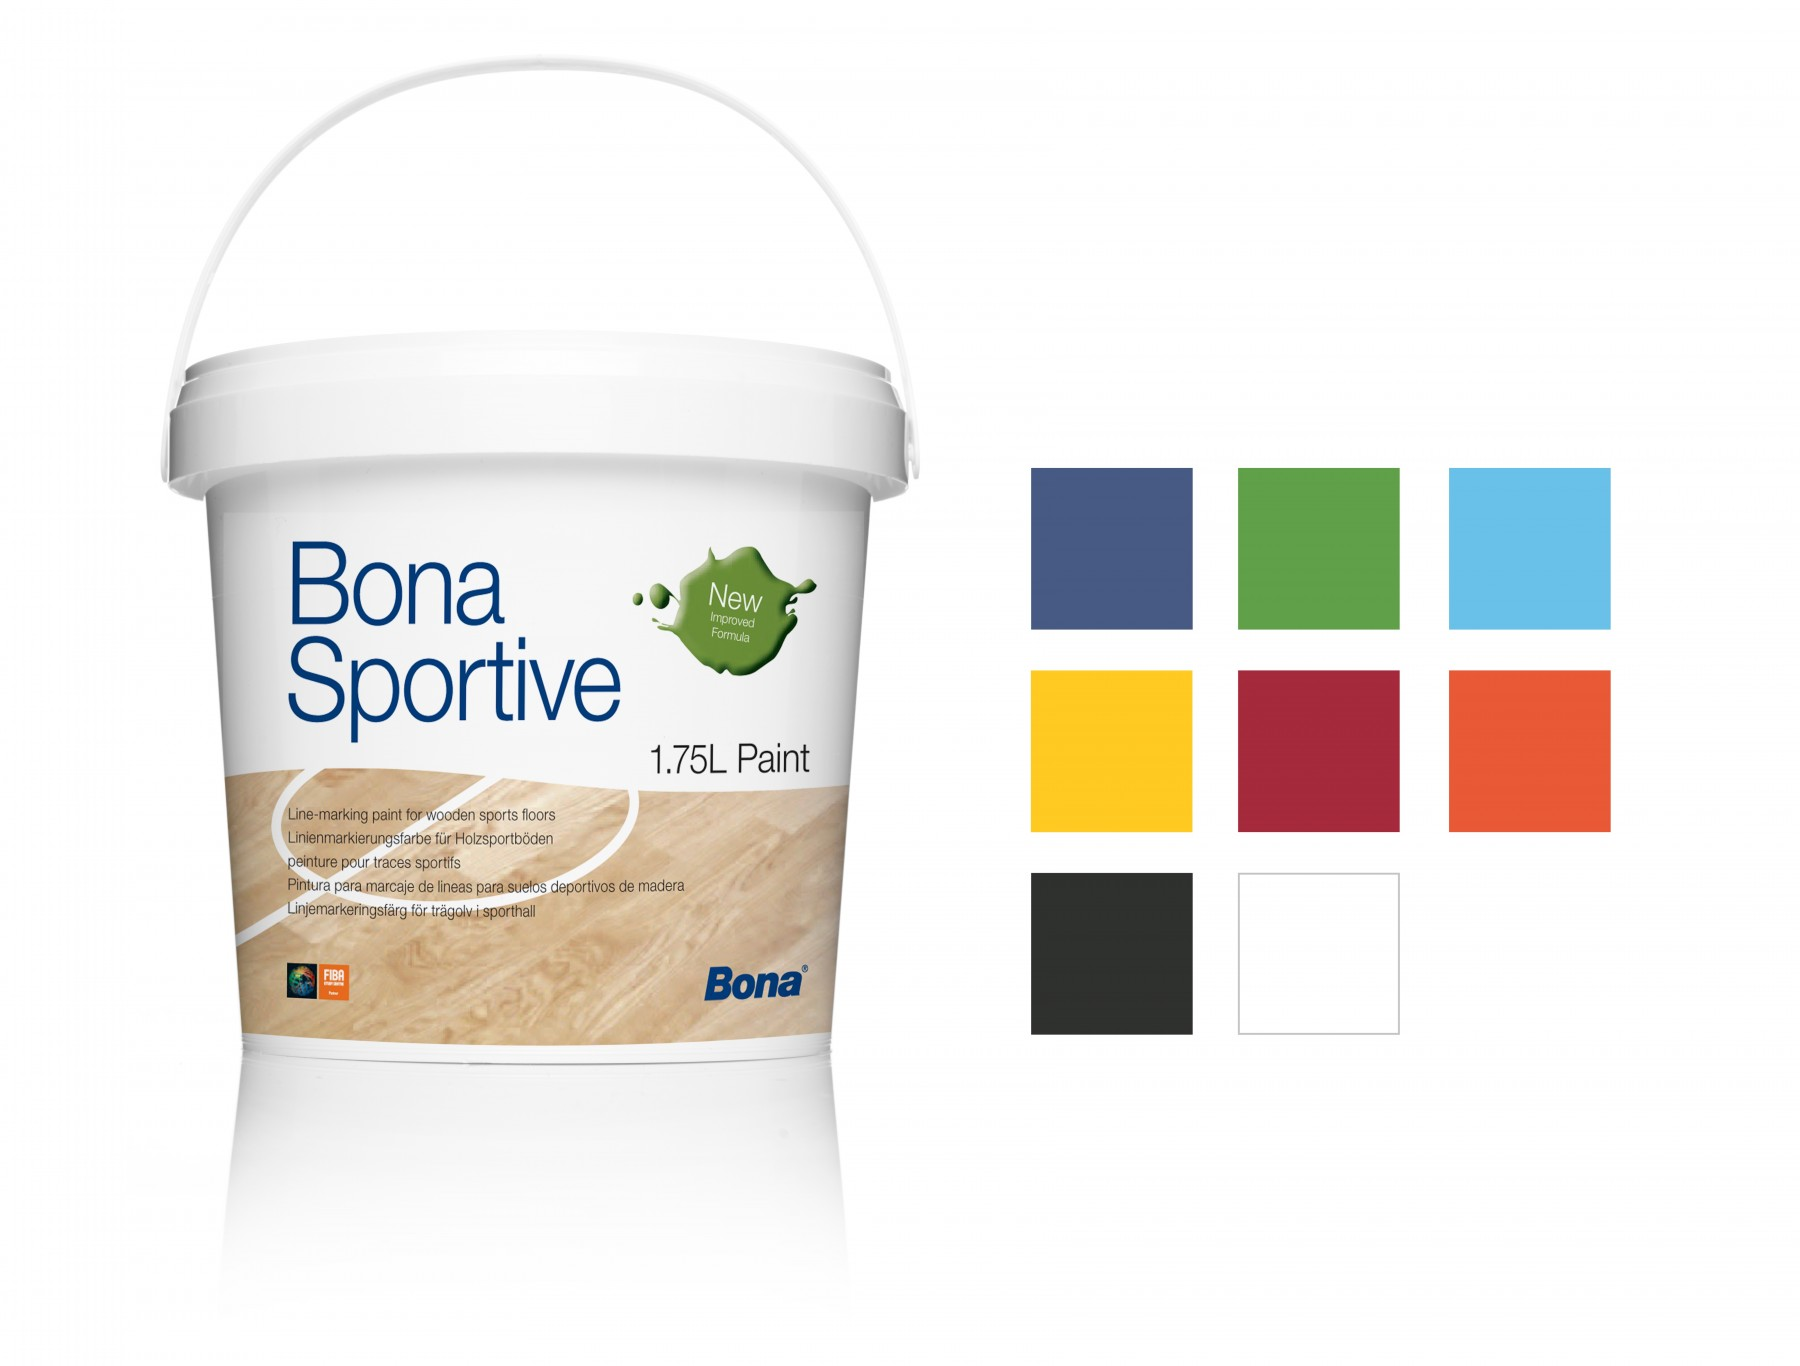 Bona Sportive Paint Red 1,75L